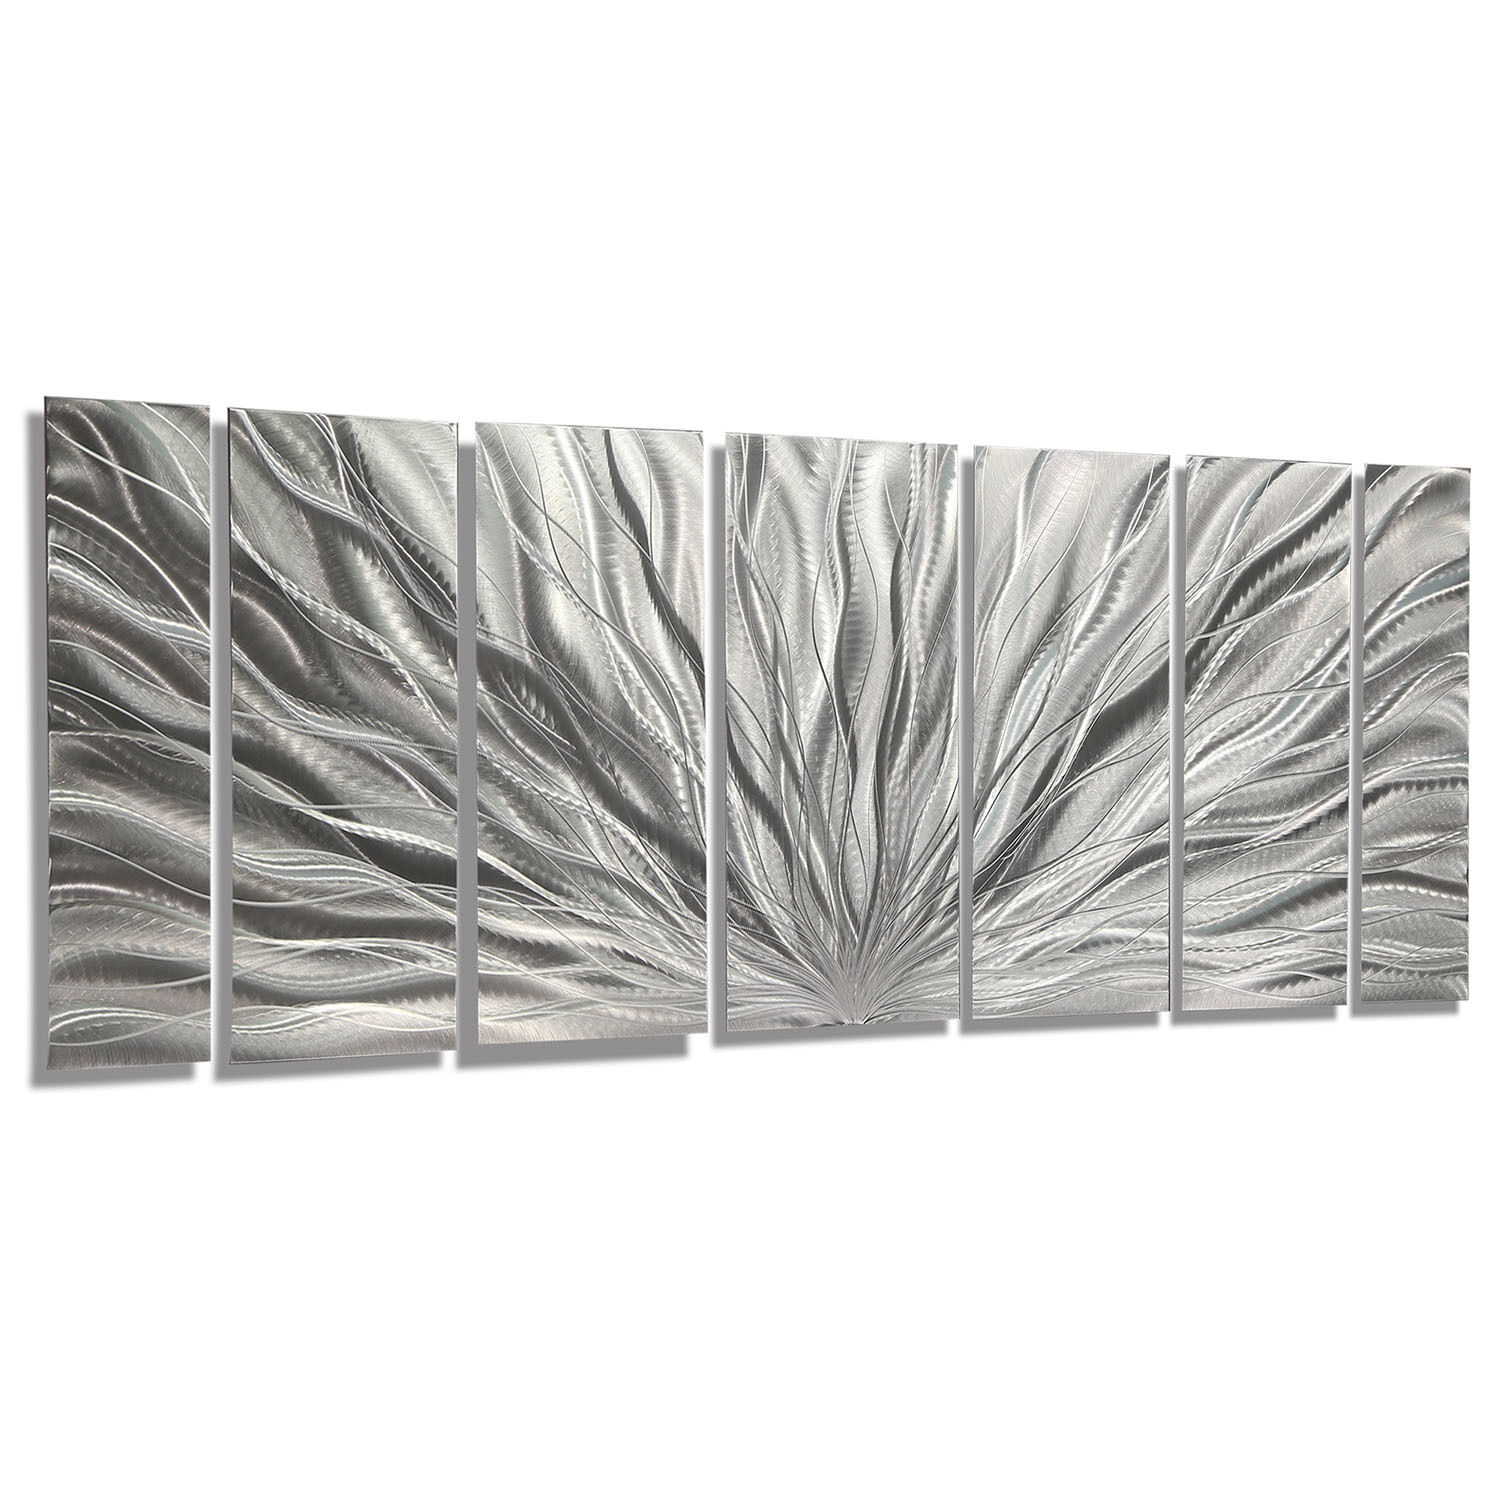 Statements2000 Modern Metal Wall Art Abstract Decor by Jon Allen Silver Plumage